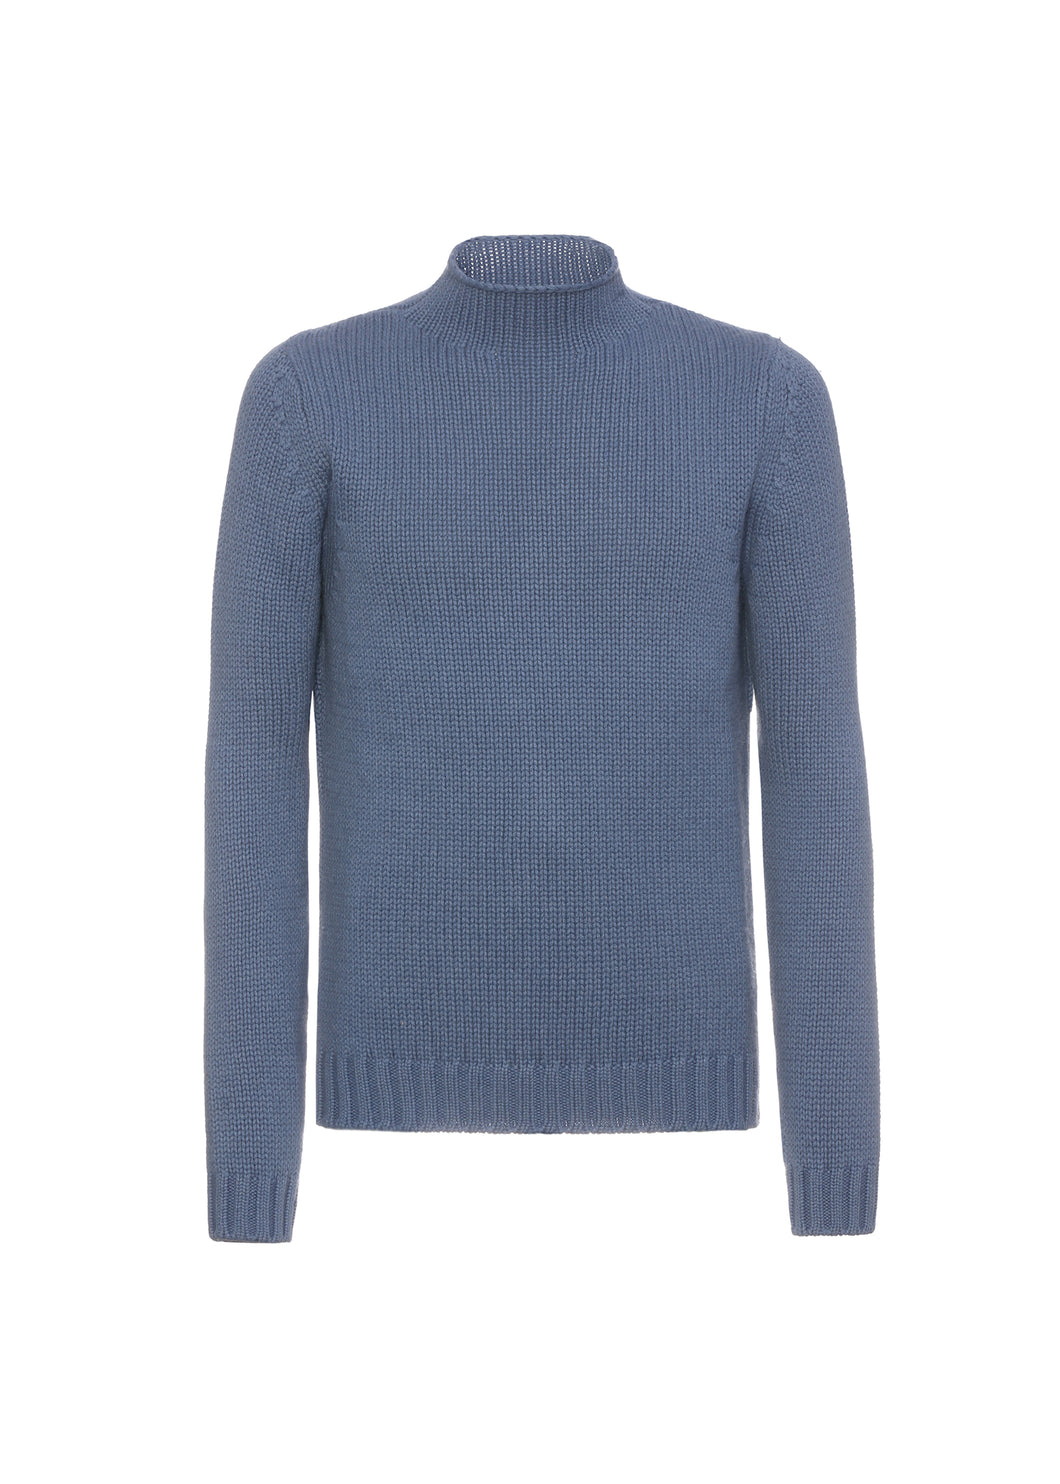 Collo muto in puro cashmere